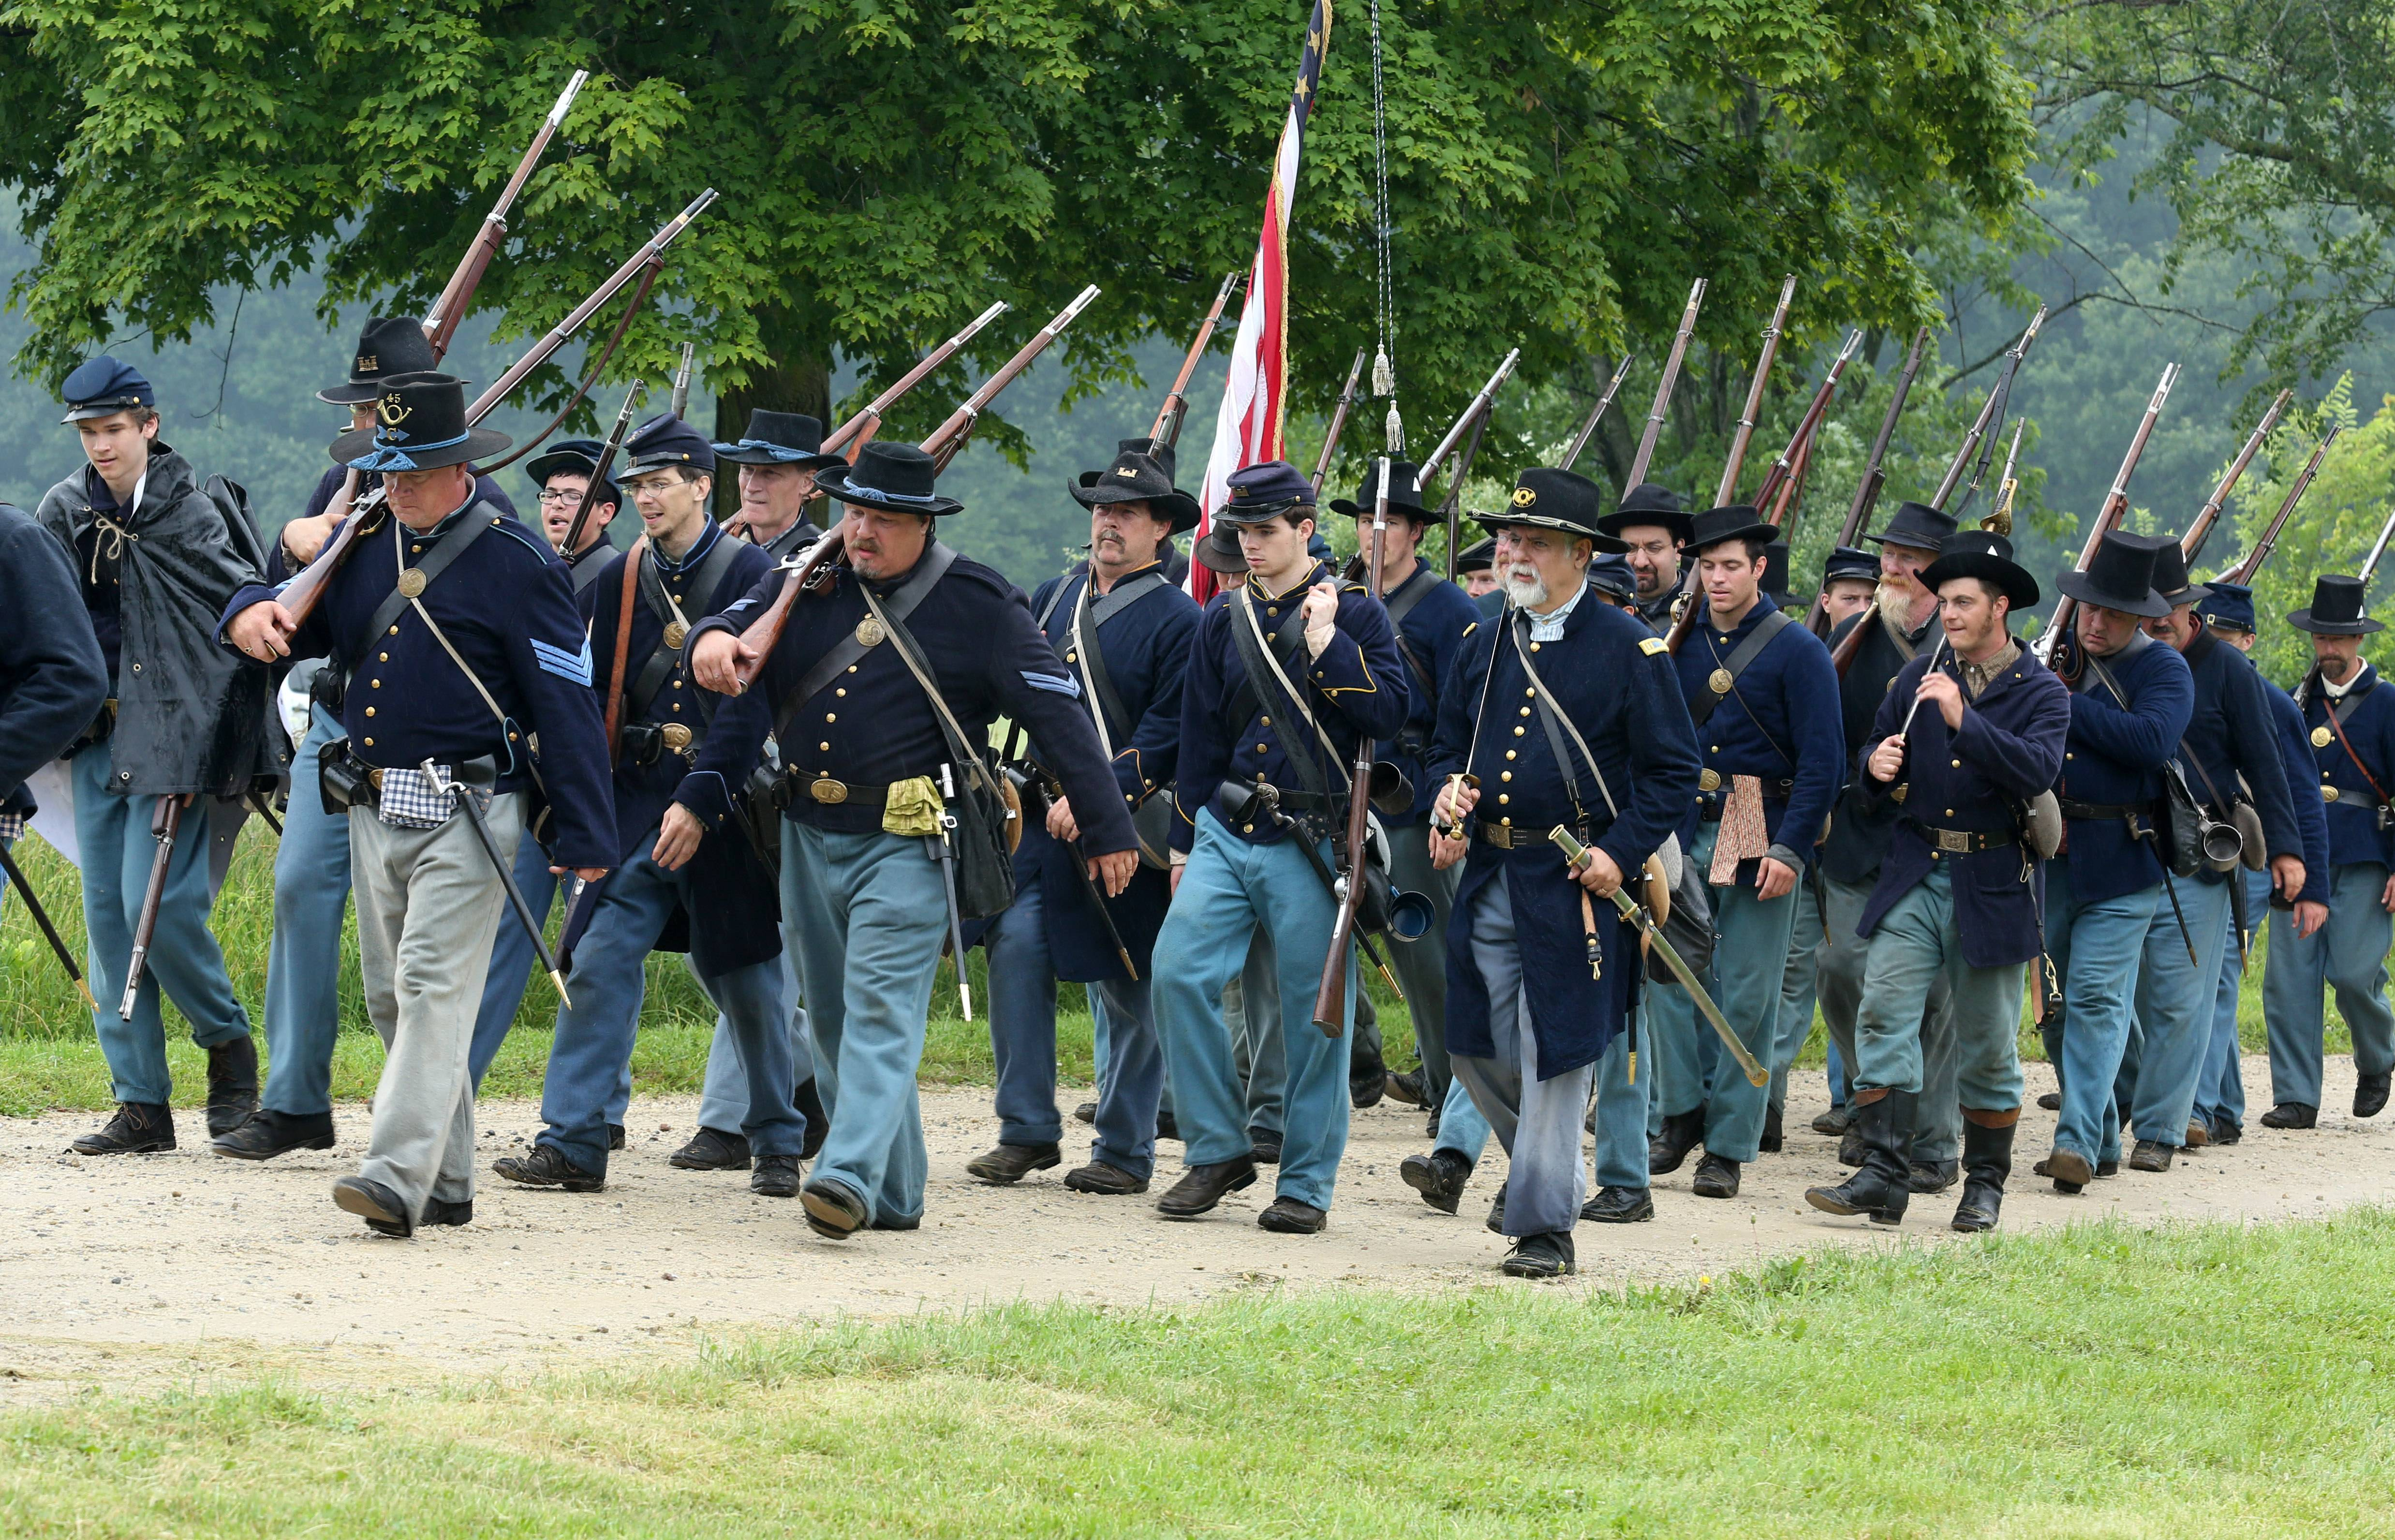 Men from the 1st Illinois battalion march through Lakewood Forest Preserve during the 23rd annual Civil War Days on Saturday near Wauconda.